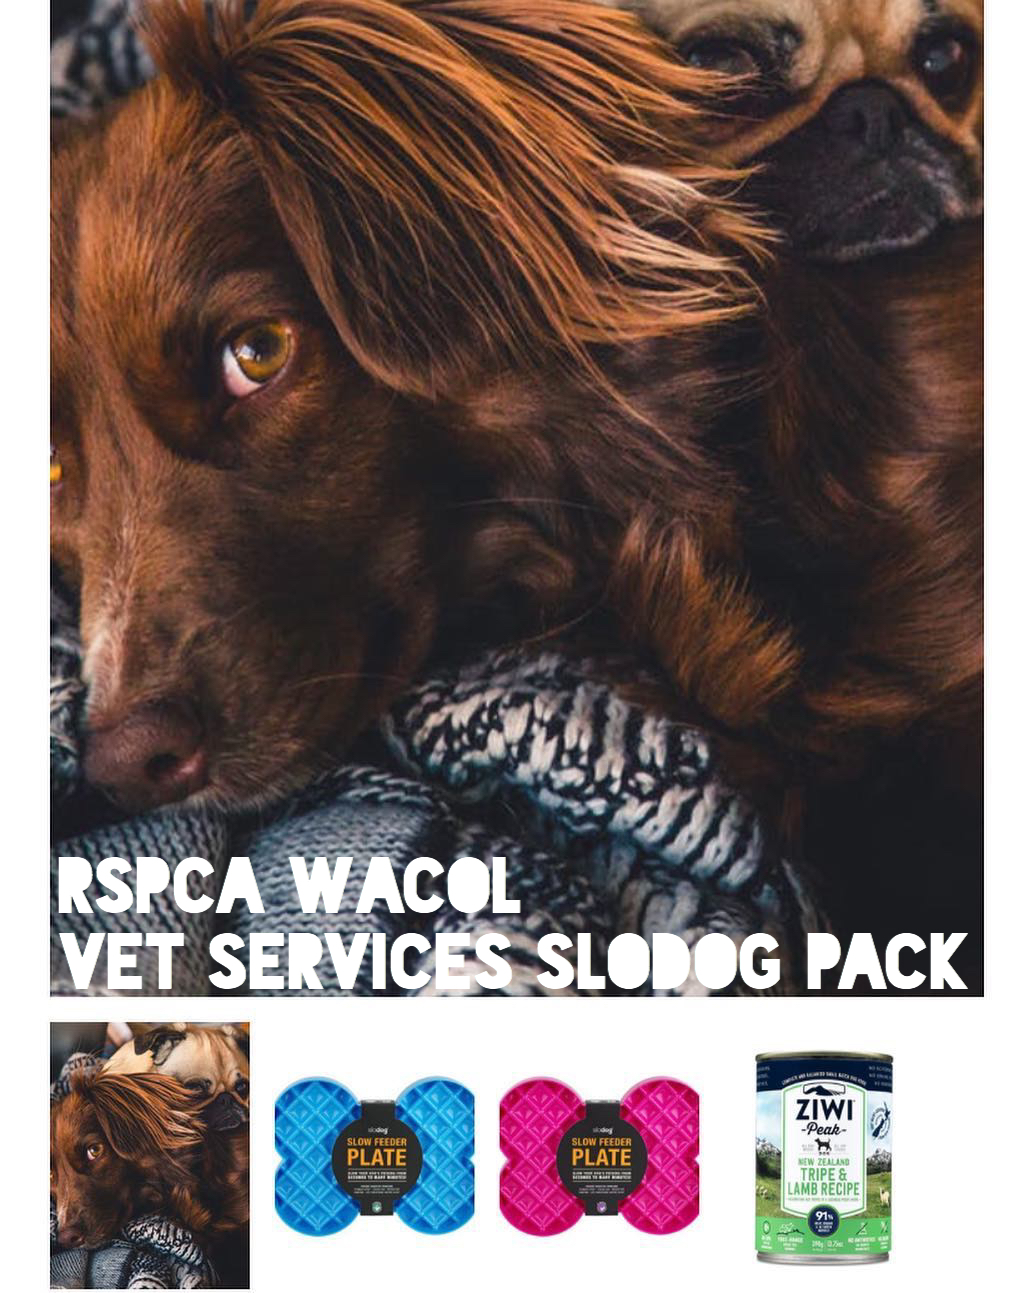 RSPCA Wacol Vet Services - We put together this slodog pack to help the amazing Vet Services team at RSPCA Qld Wacol shelter reach their goal of replacing all the bowls in their vet block with SloDog slow feeder platesThe team there have been implementing some excellent enrichment routines and see the benefits of the SloDog feeders and how well they will fit with the needs of their patients.The campaign was highly successful with the team surpassing their goal within 3 weeks of campaign. In total the team received 18 slodog plates (+ 9 bonus ziwi peaks to spoil some pups) and have thrown out all their conventional feeders within the facility.